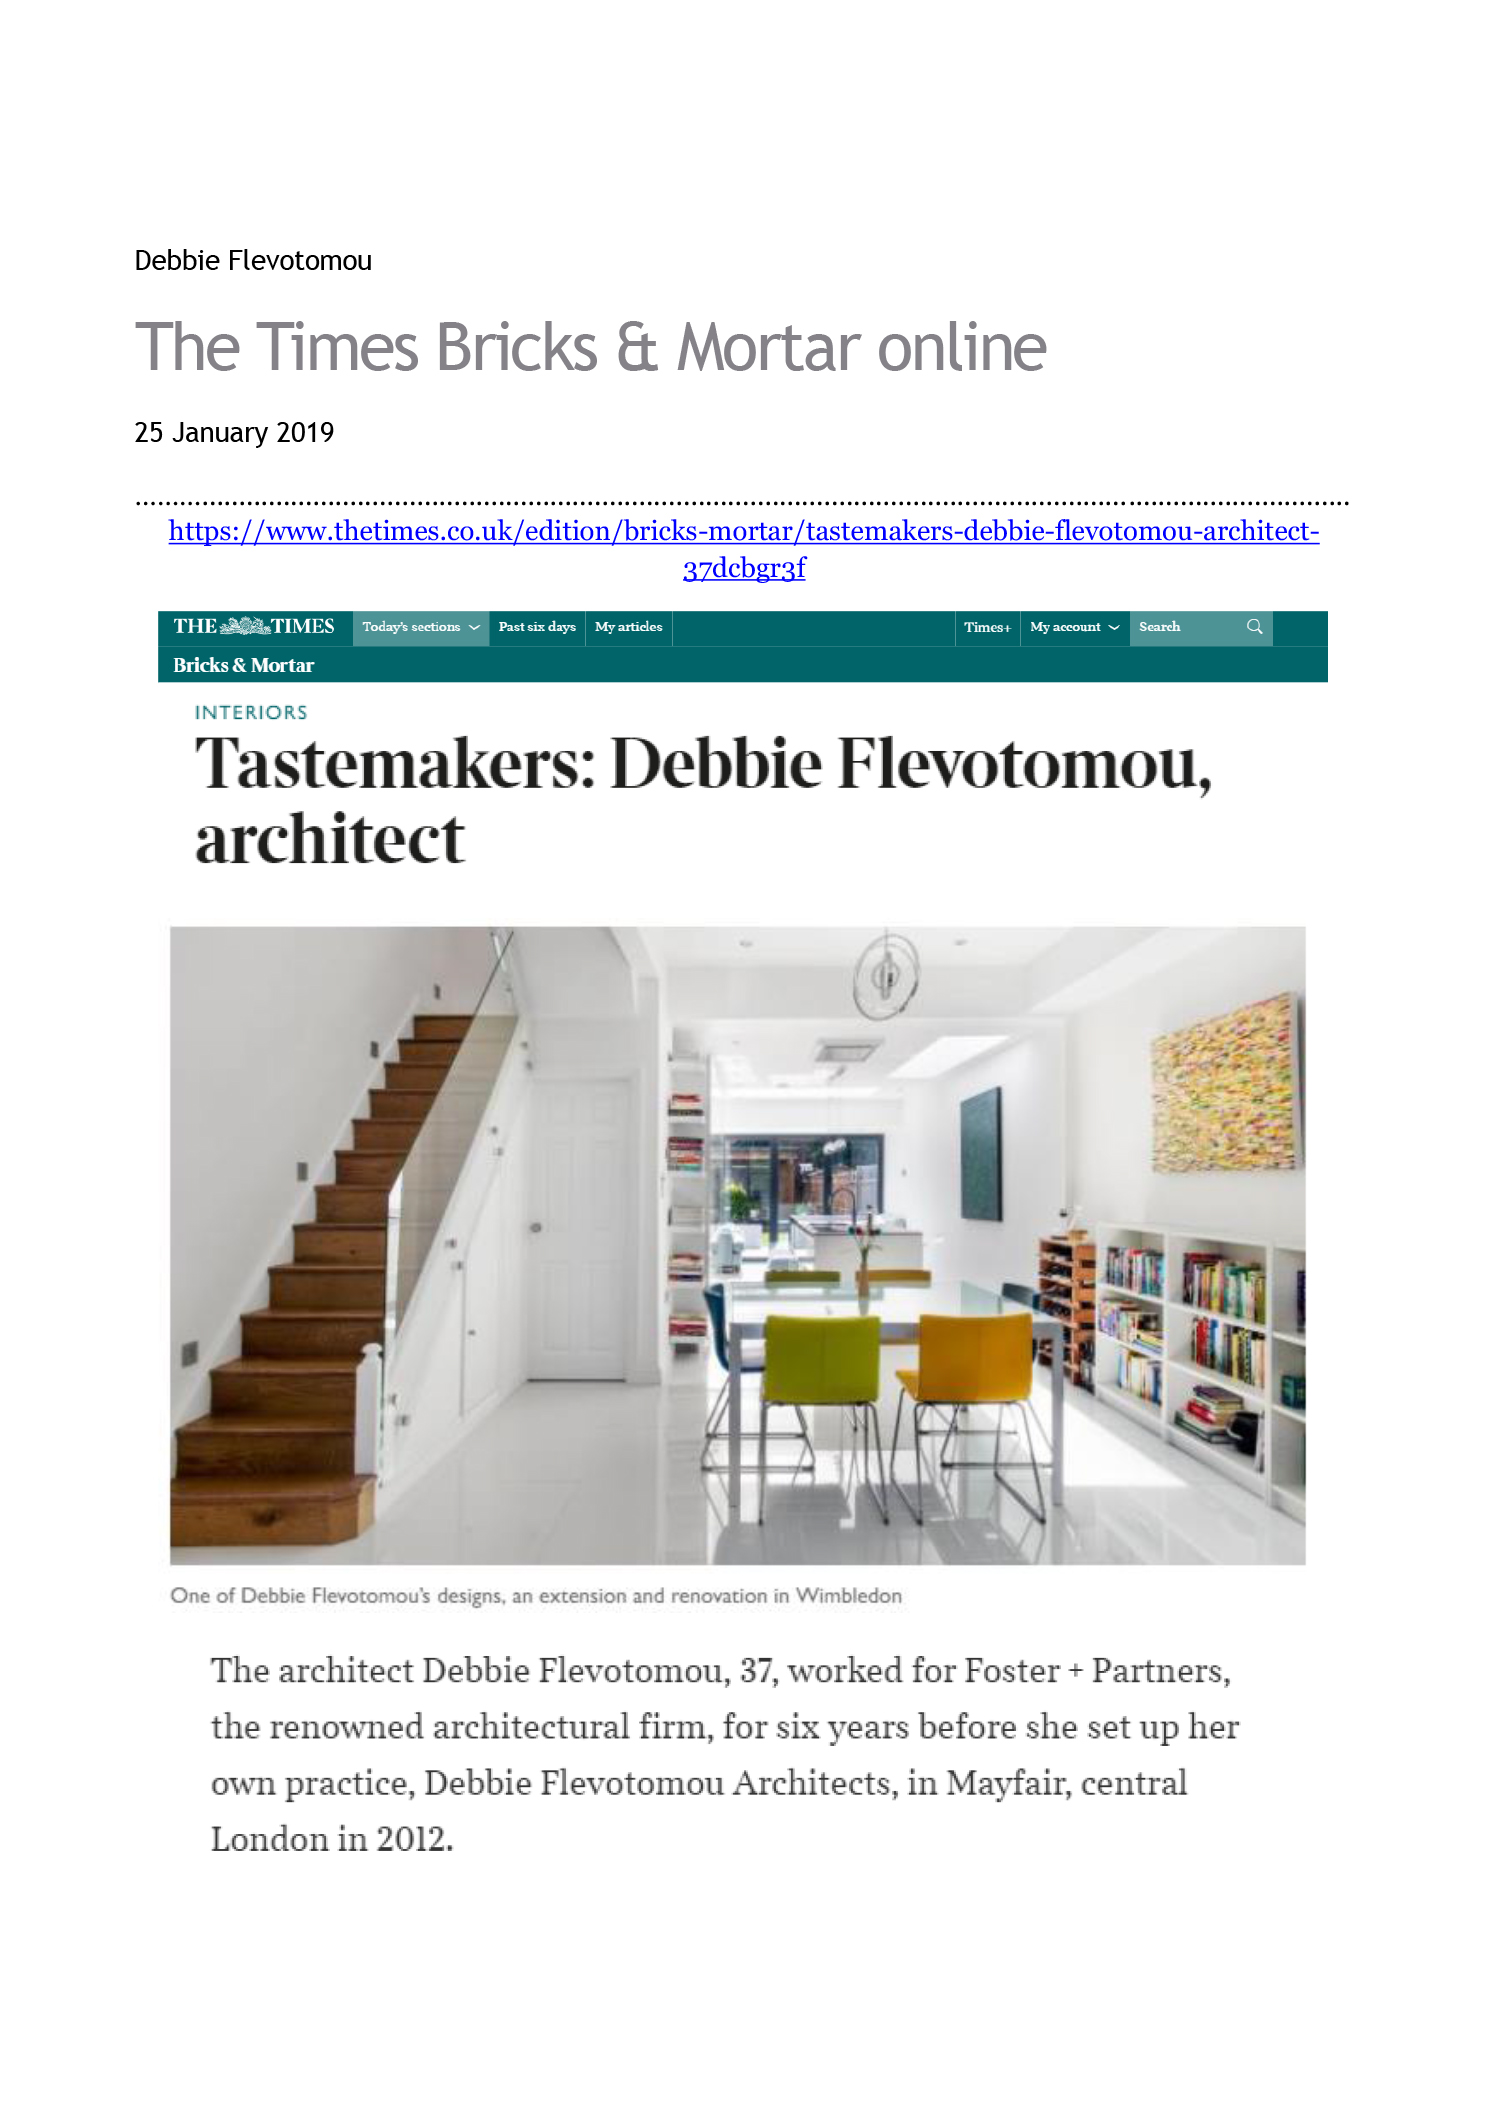 190125 The Times Bricks & Mortar online-1.jpg